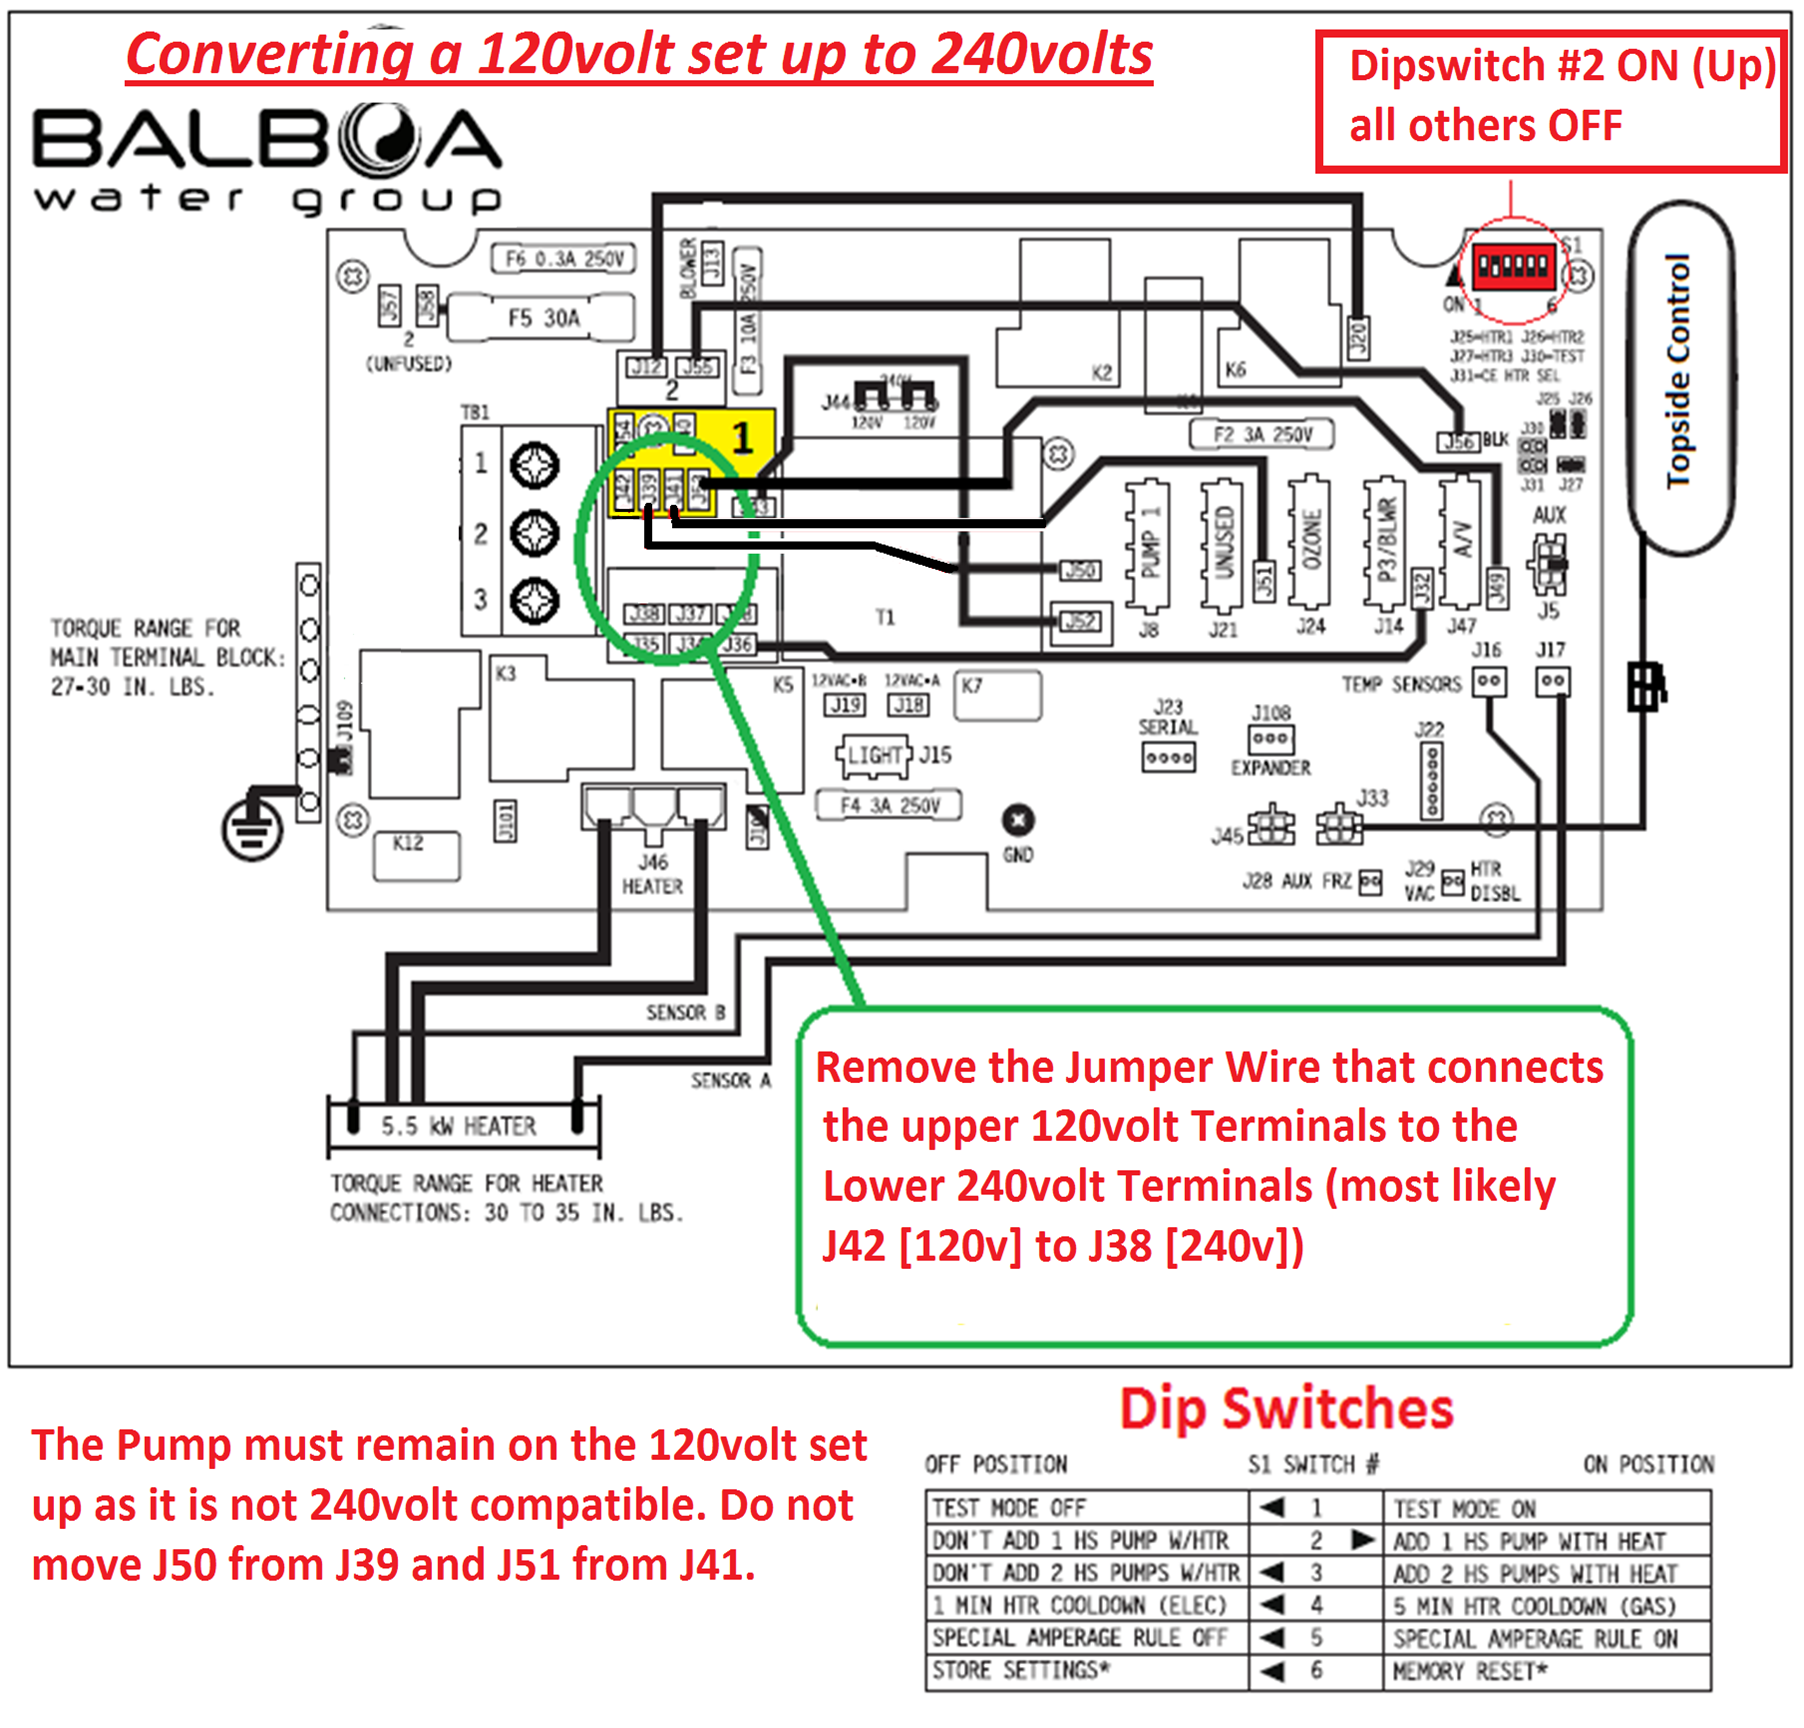 Balboa Wiring Diagram Schemes Electrical Installation Diagrams Converting A 120v Bp To 240v Raypak